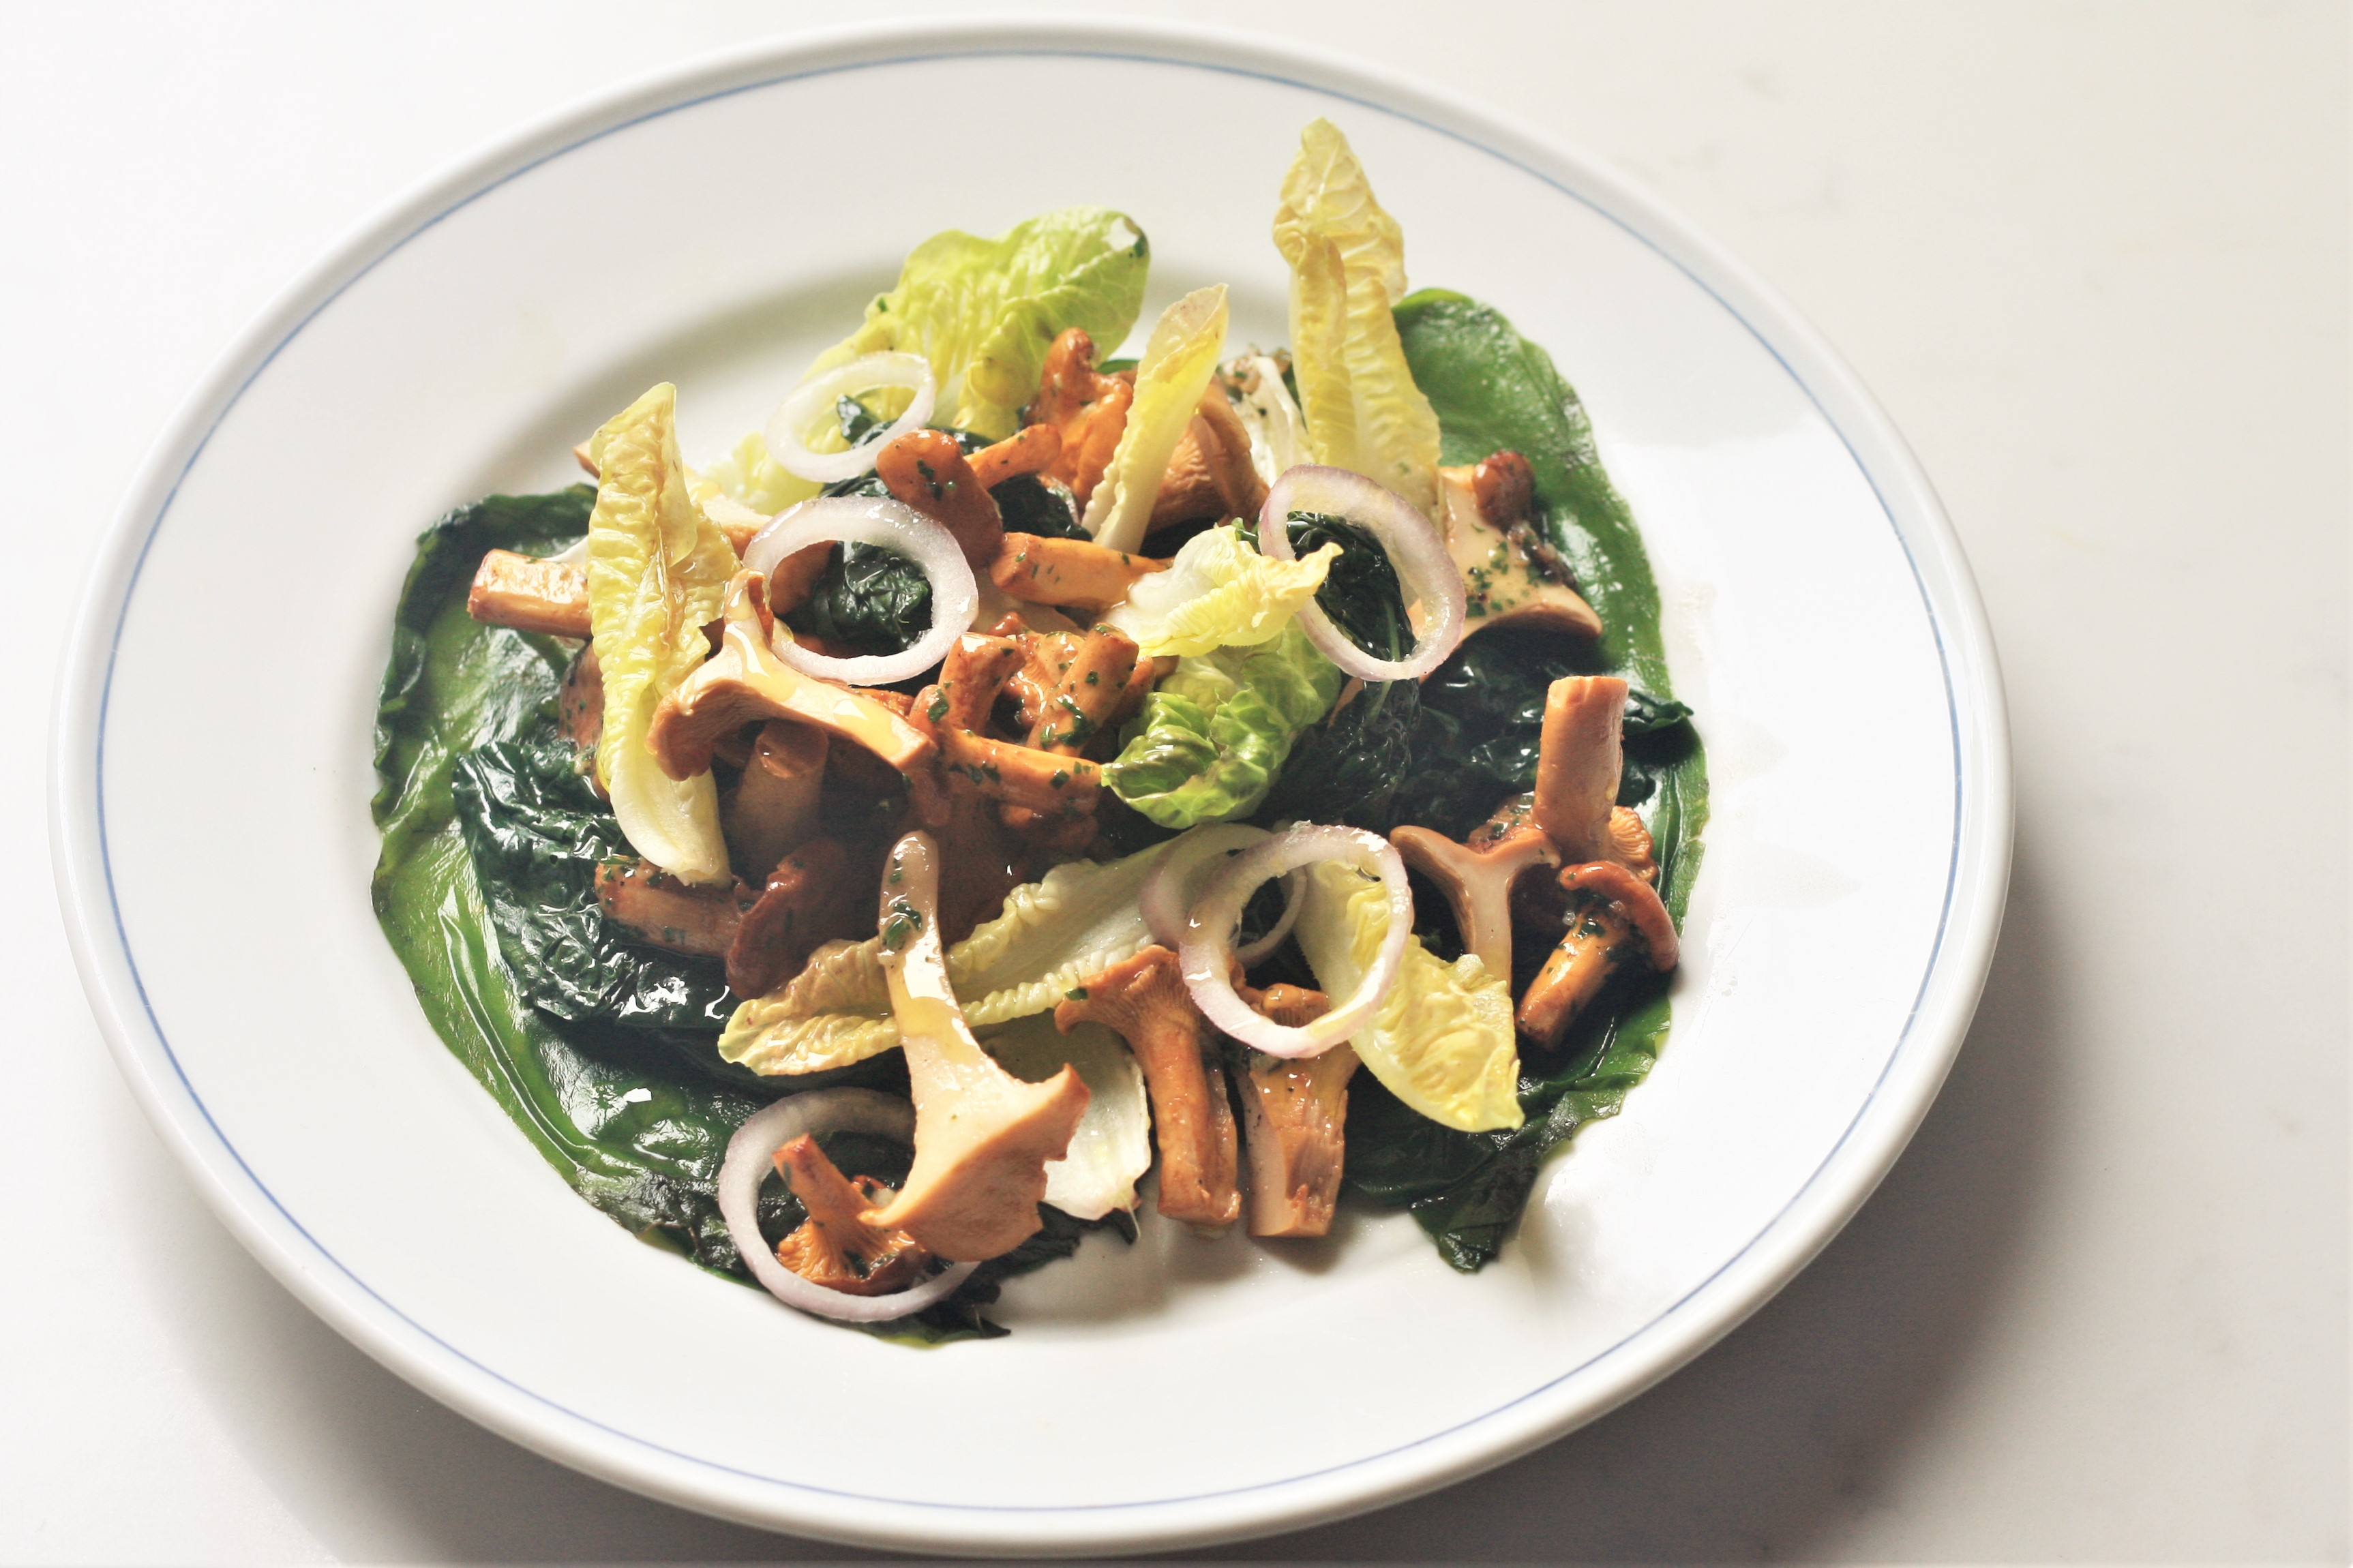 Salad of Girolles